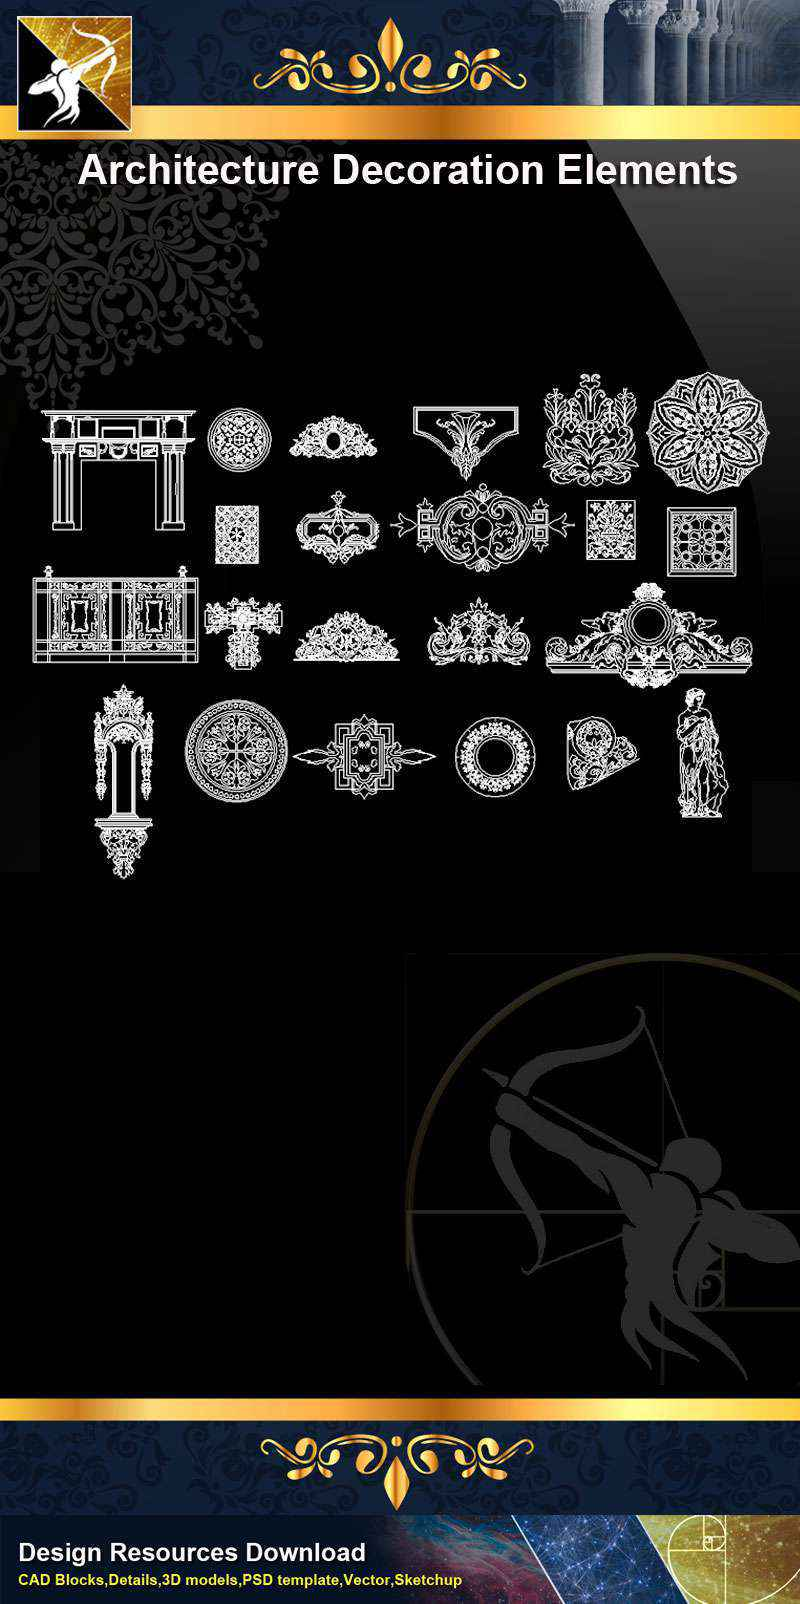 ★【 Free Architecture Decoration Elements V.11】@Autocad Decoration Blocks,Drawings,CAD Details,Elevation